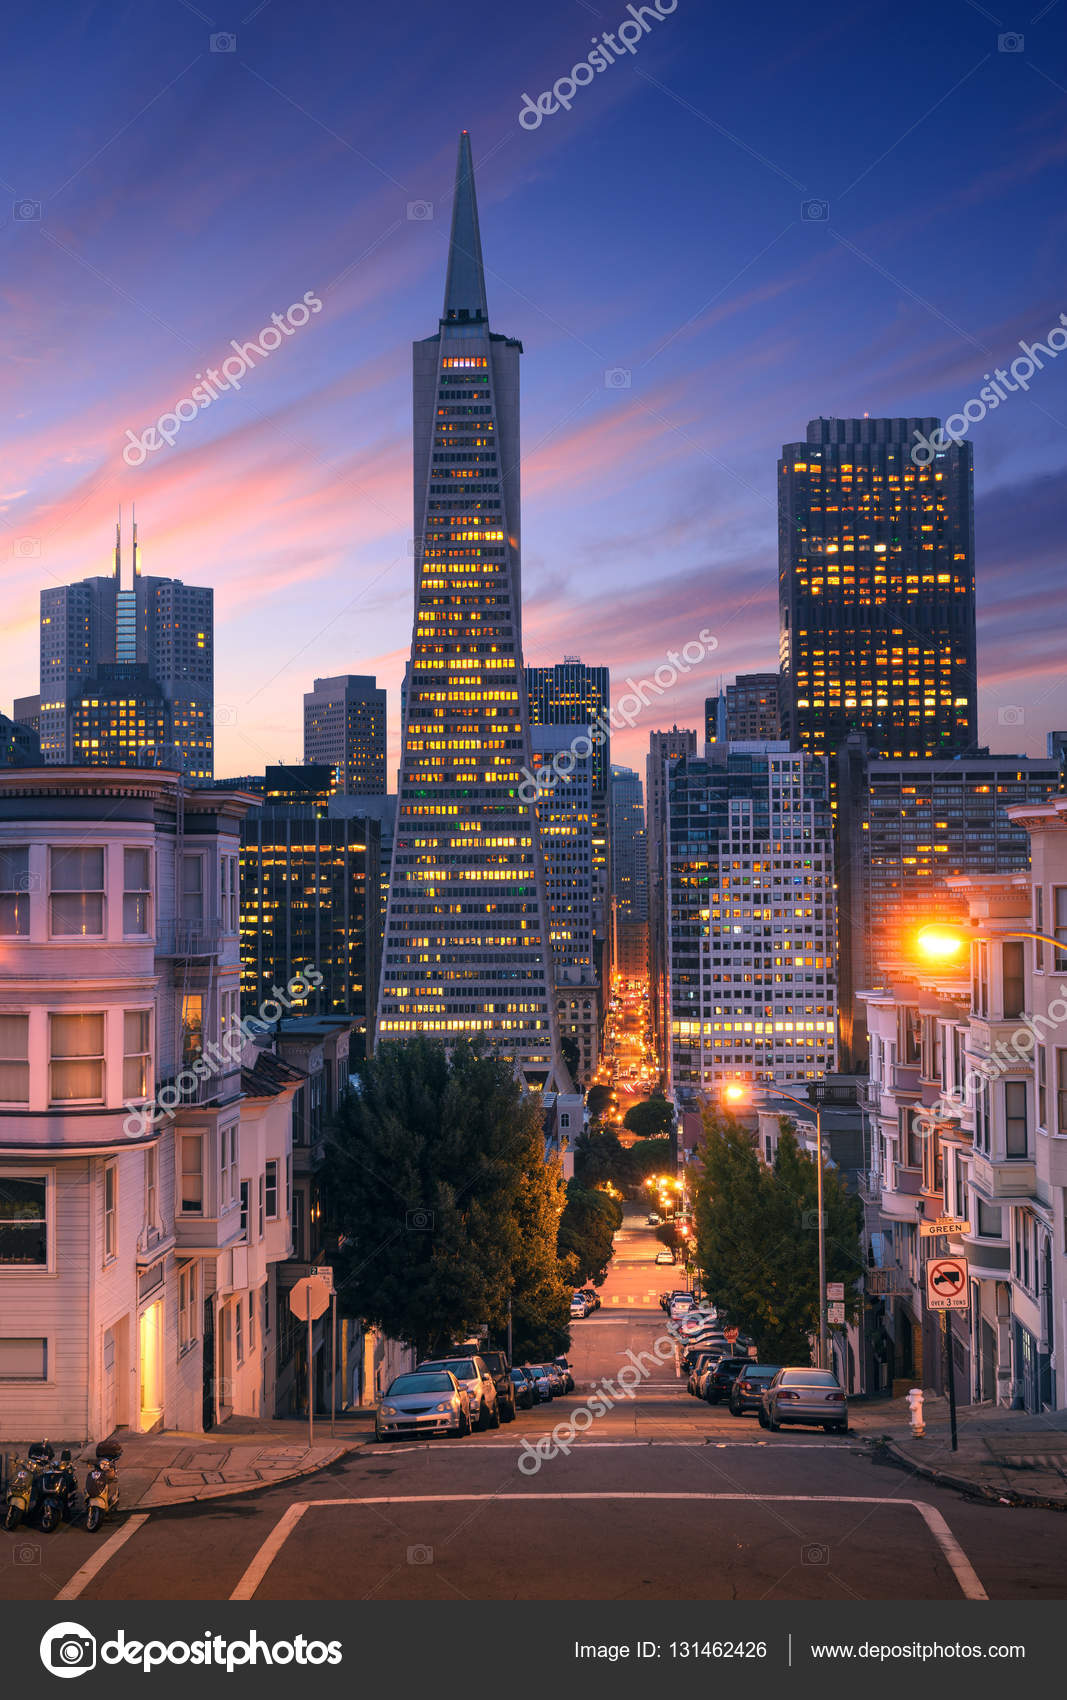 san francisco downtown at sunrise night famous typical buildings